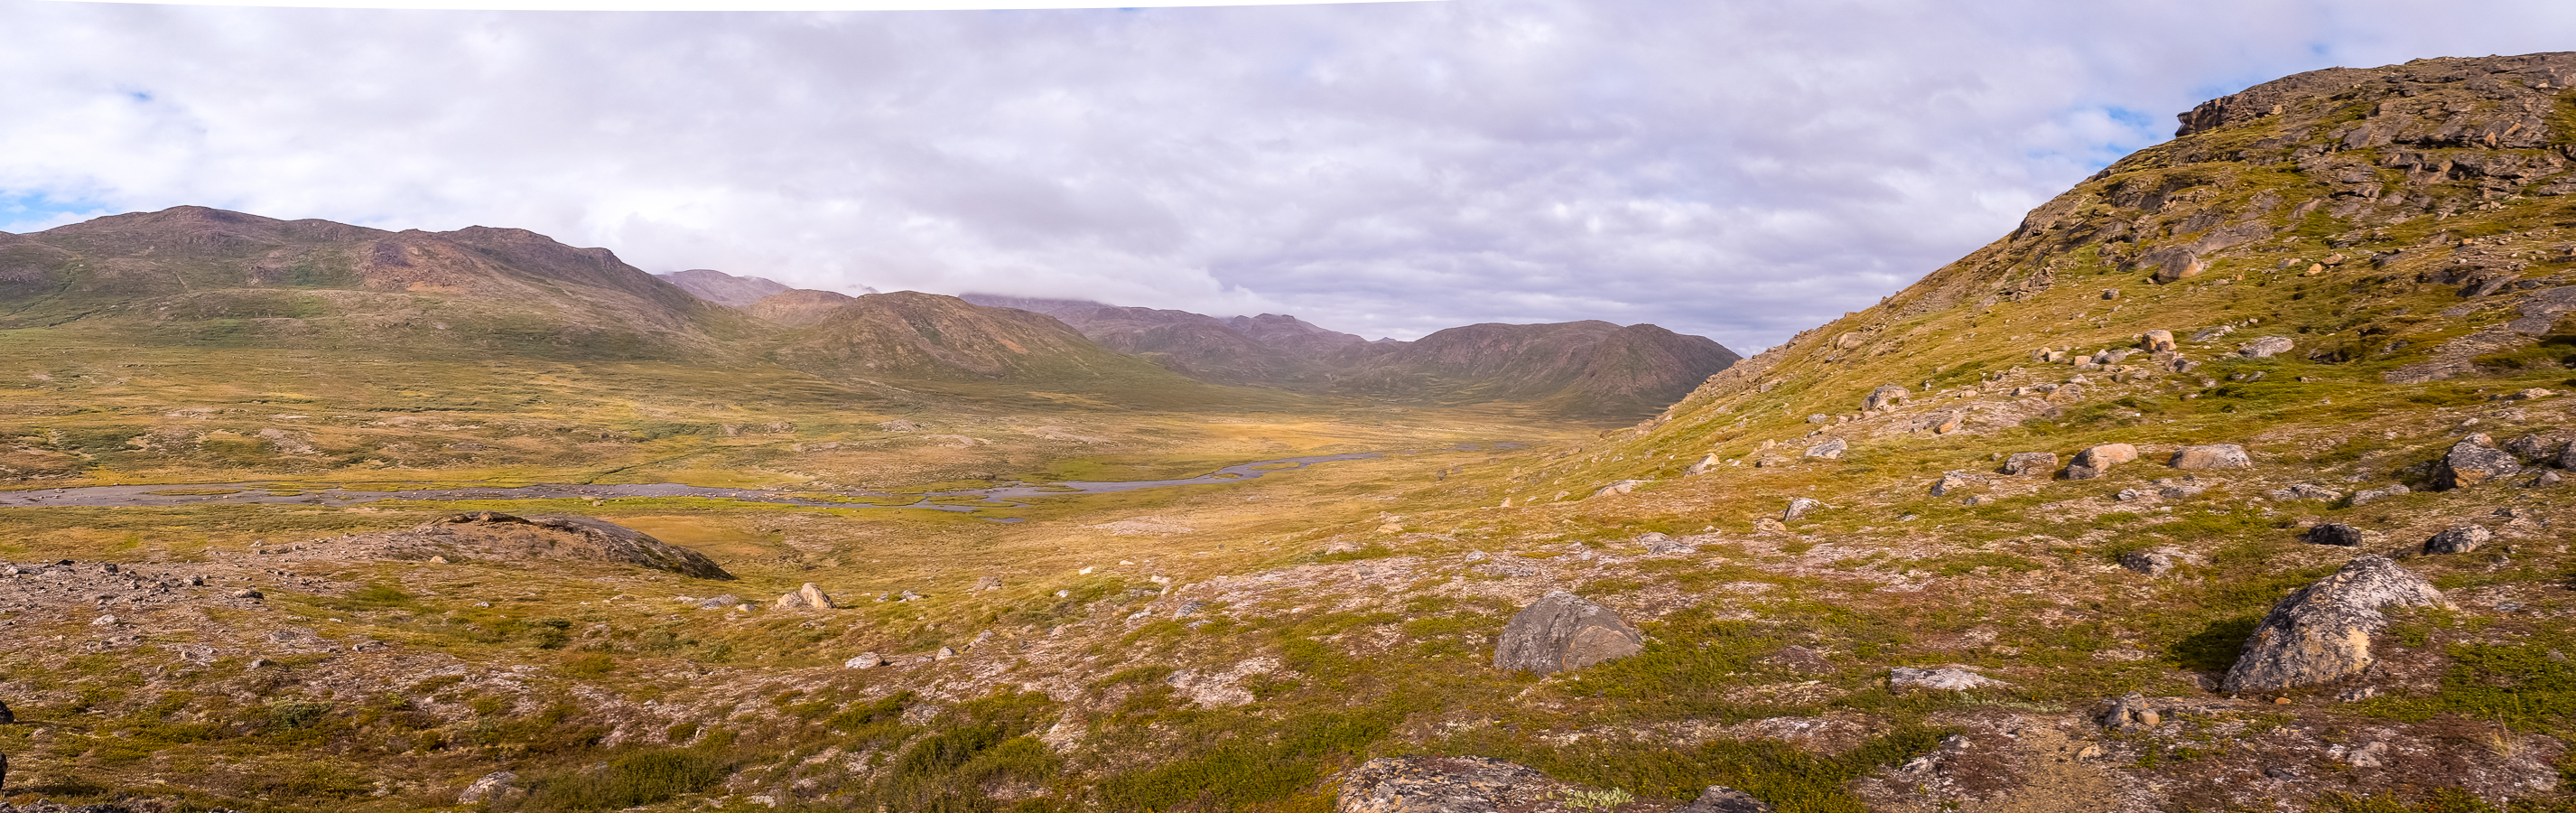 Panorama of alternate valley near Kangerlusarsuk Tulleq Nord Hut - Arctic Circle Trail - West Greenland